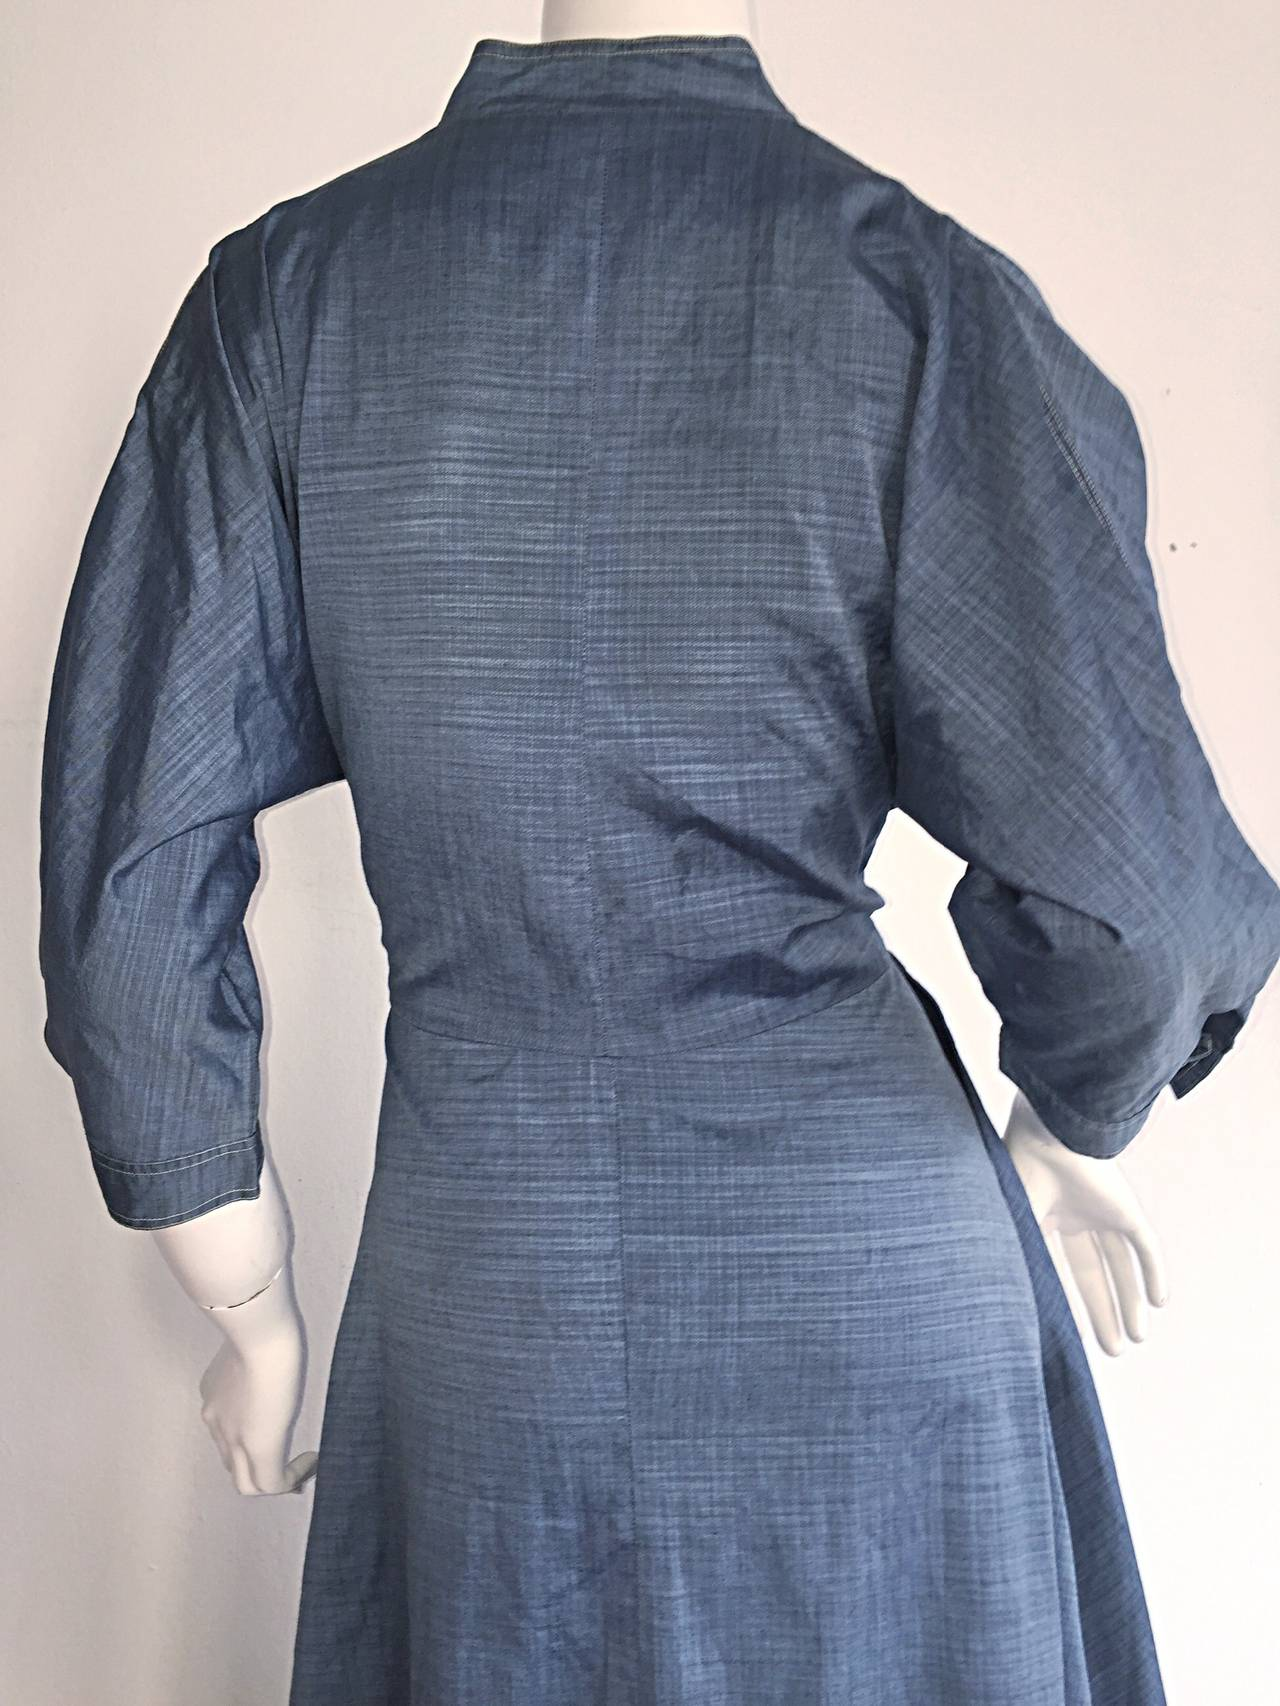 1940s Vintage B. Altman & Co. Denim Chambray Dress w/ Horse Buttons 5